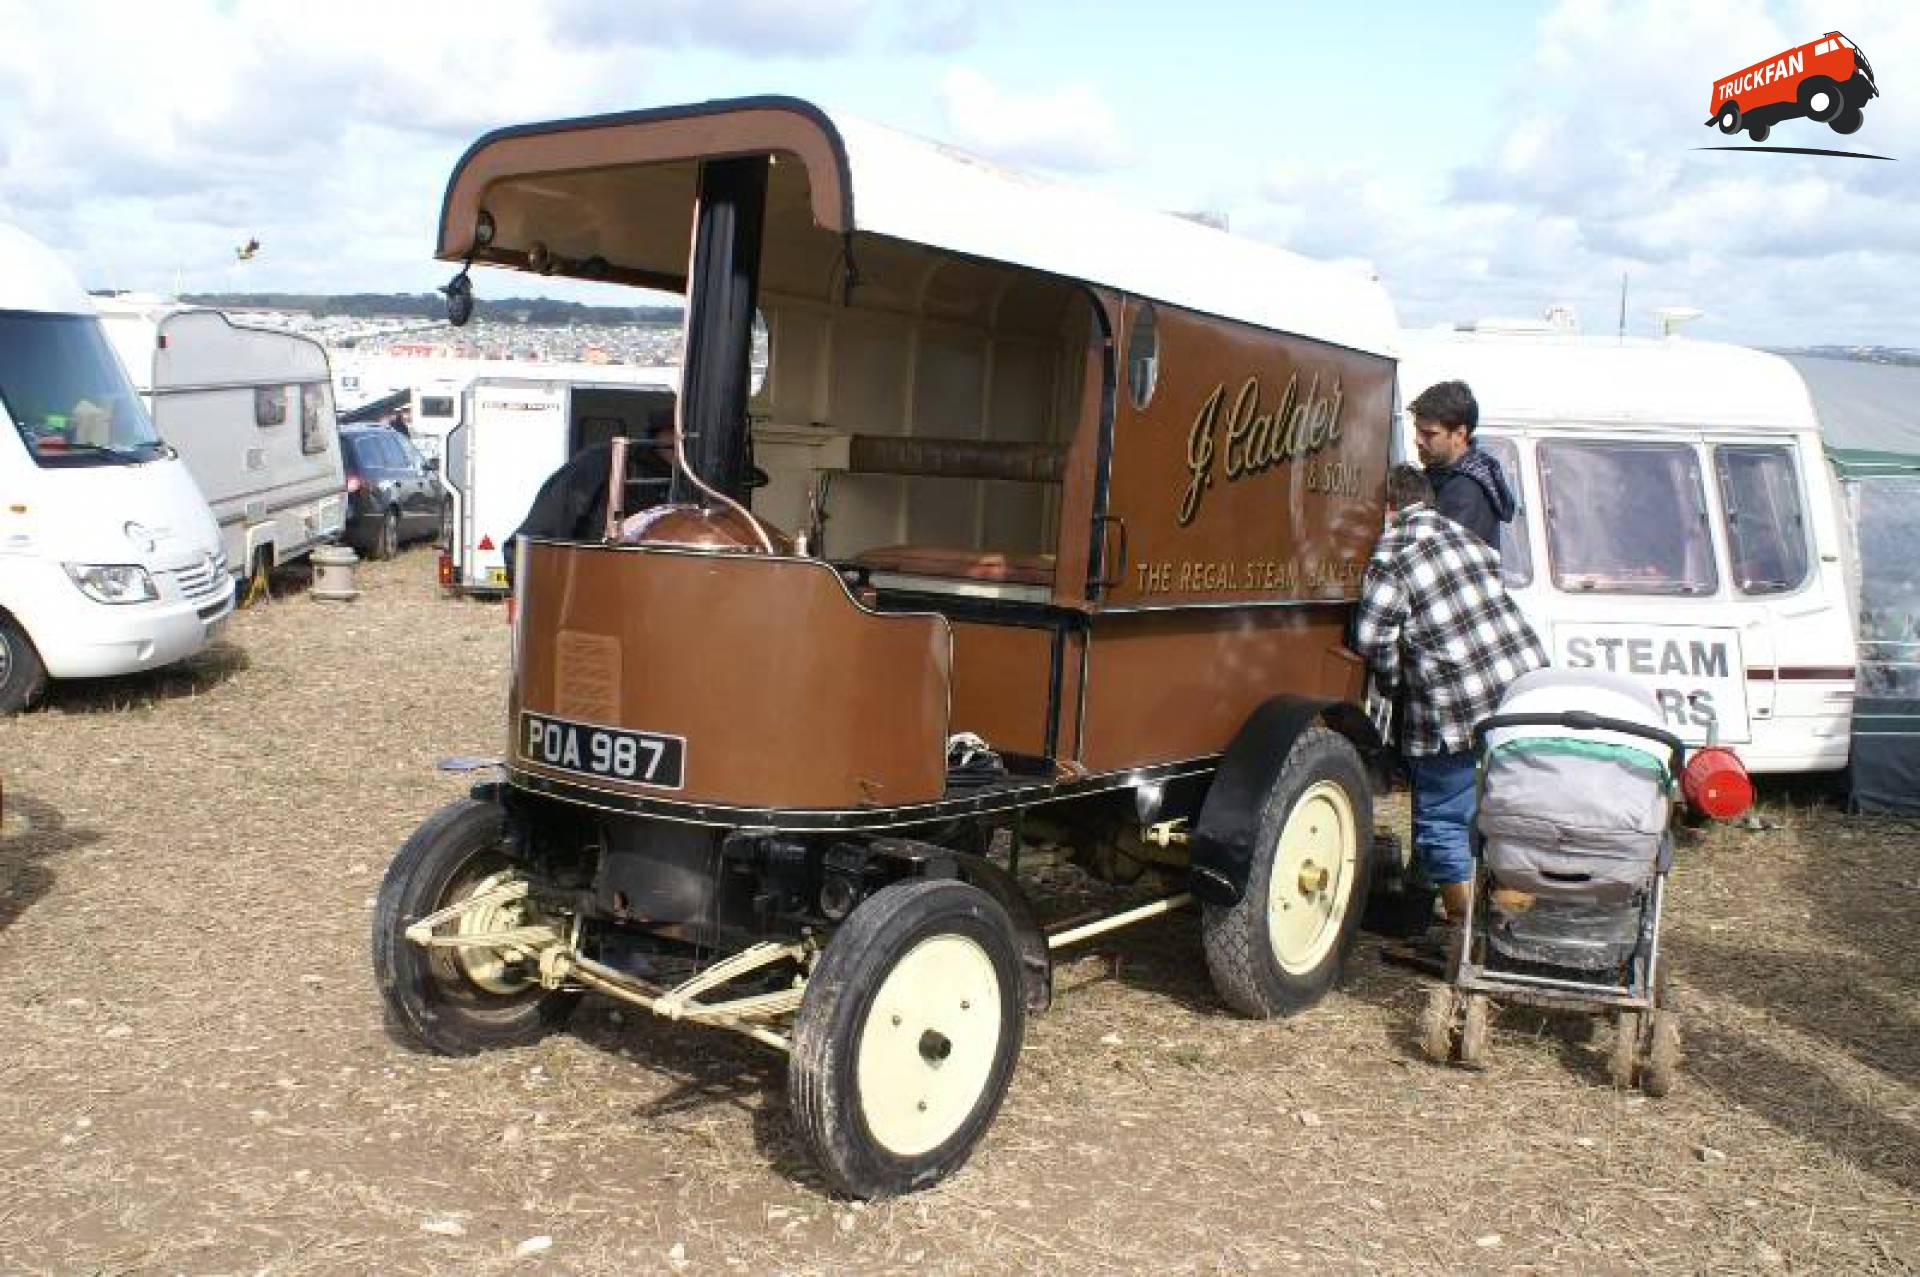 Locomobile steamvan